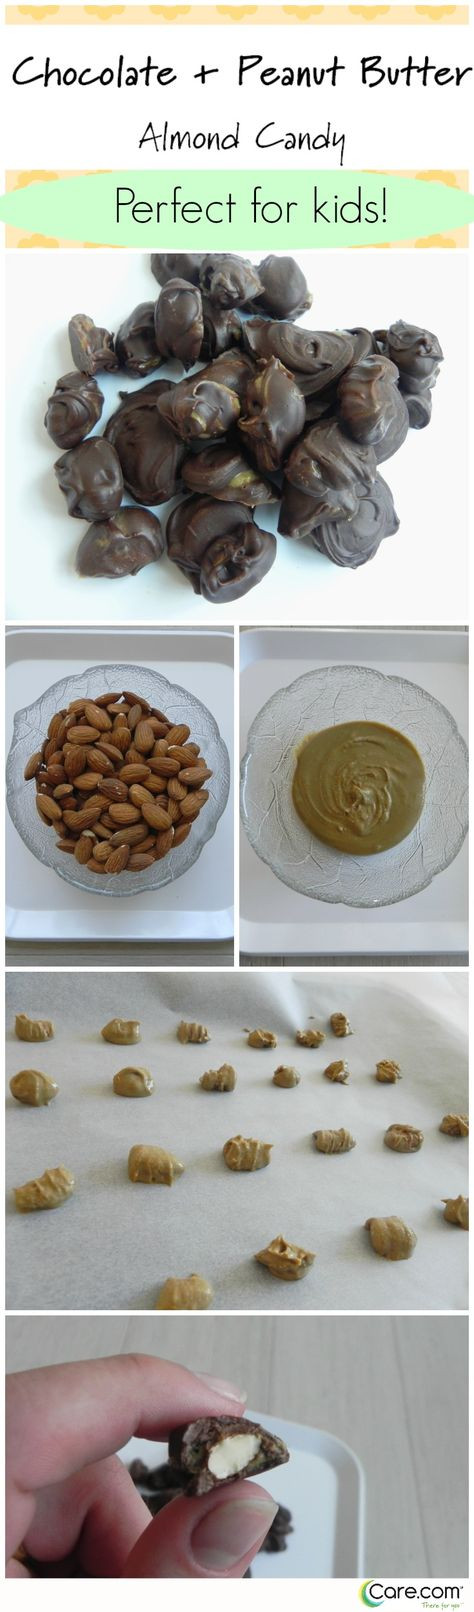 Chocolate Peanut Butter Almond Candy. Great recipe for cooking with kids!